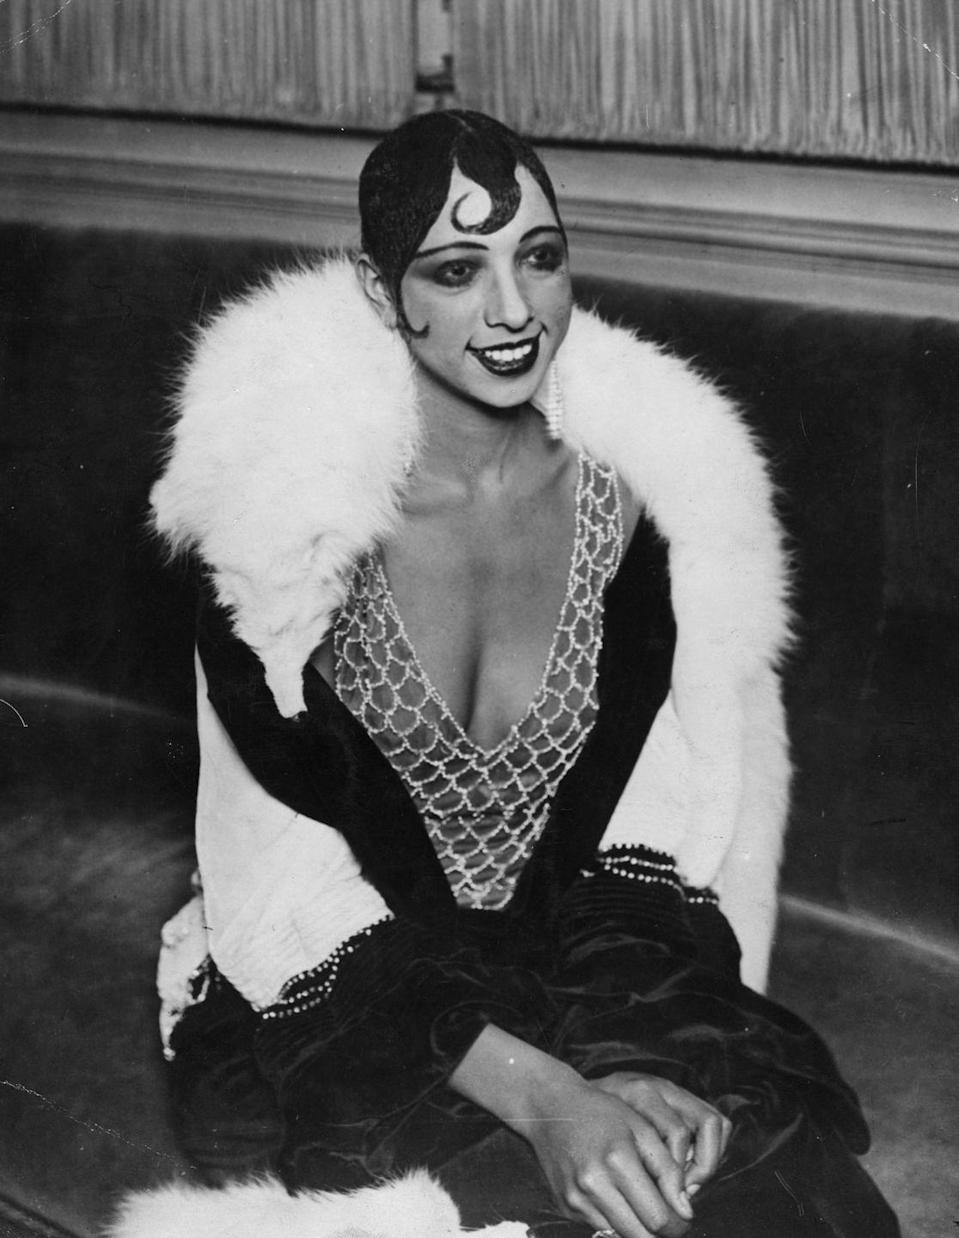 <p>Baker, who worked as a spy during the WWII by passing along information she heard while performing for the Axis troops, was known for her over-the-top style and luxurious ensembles. <br></p>